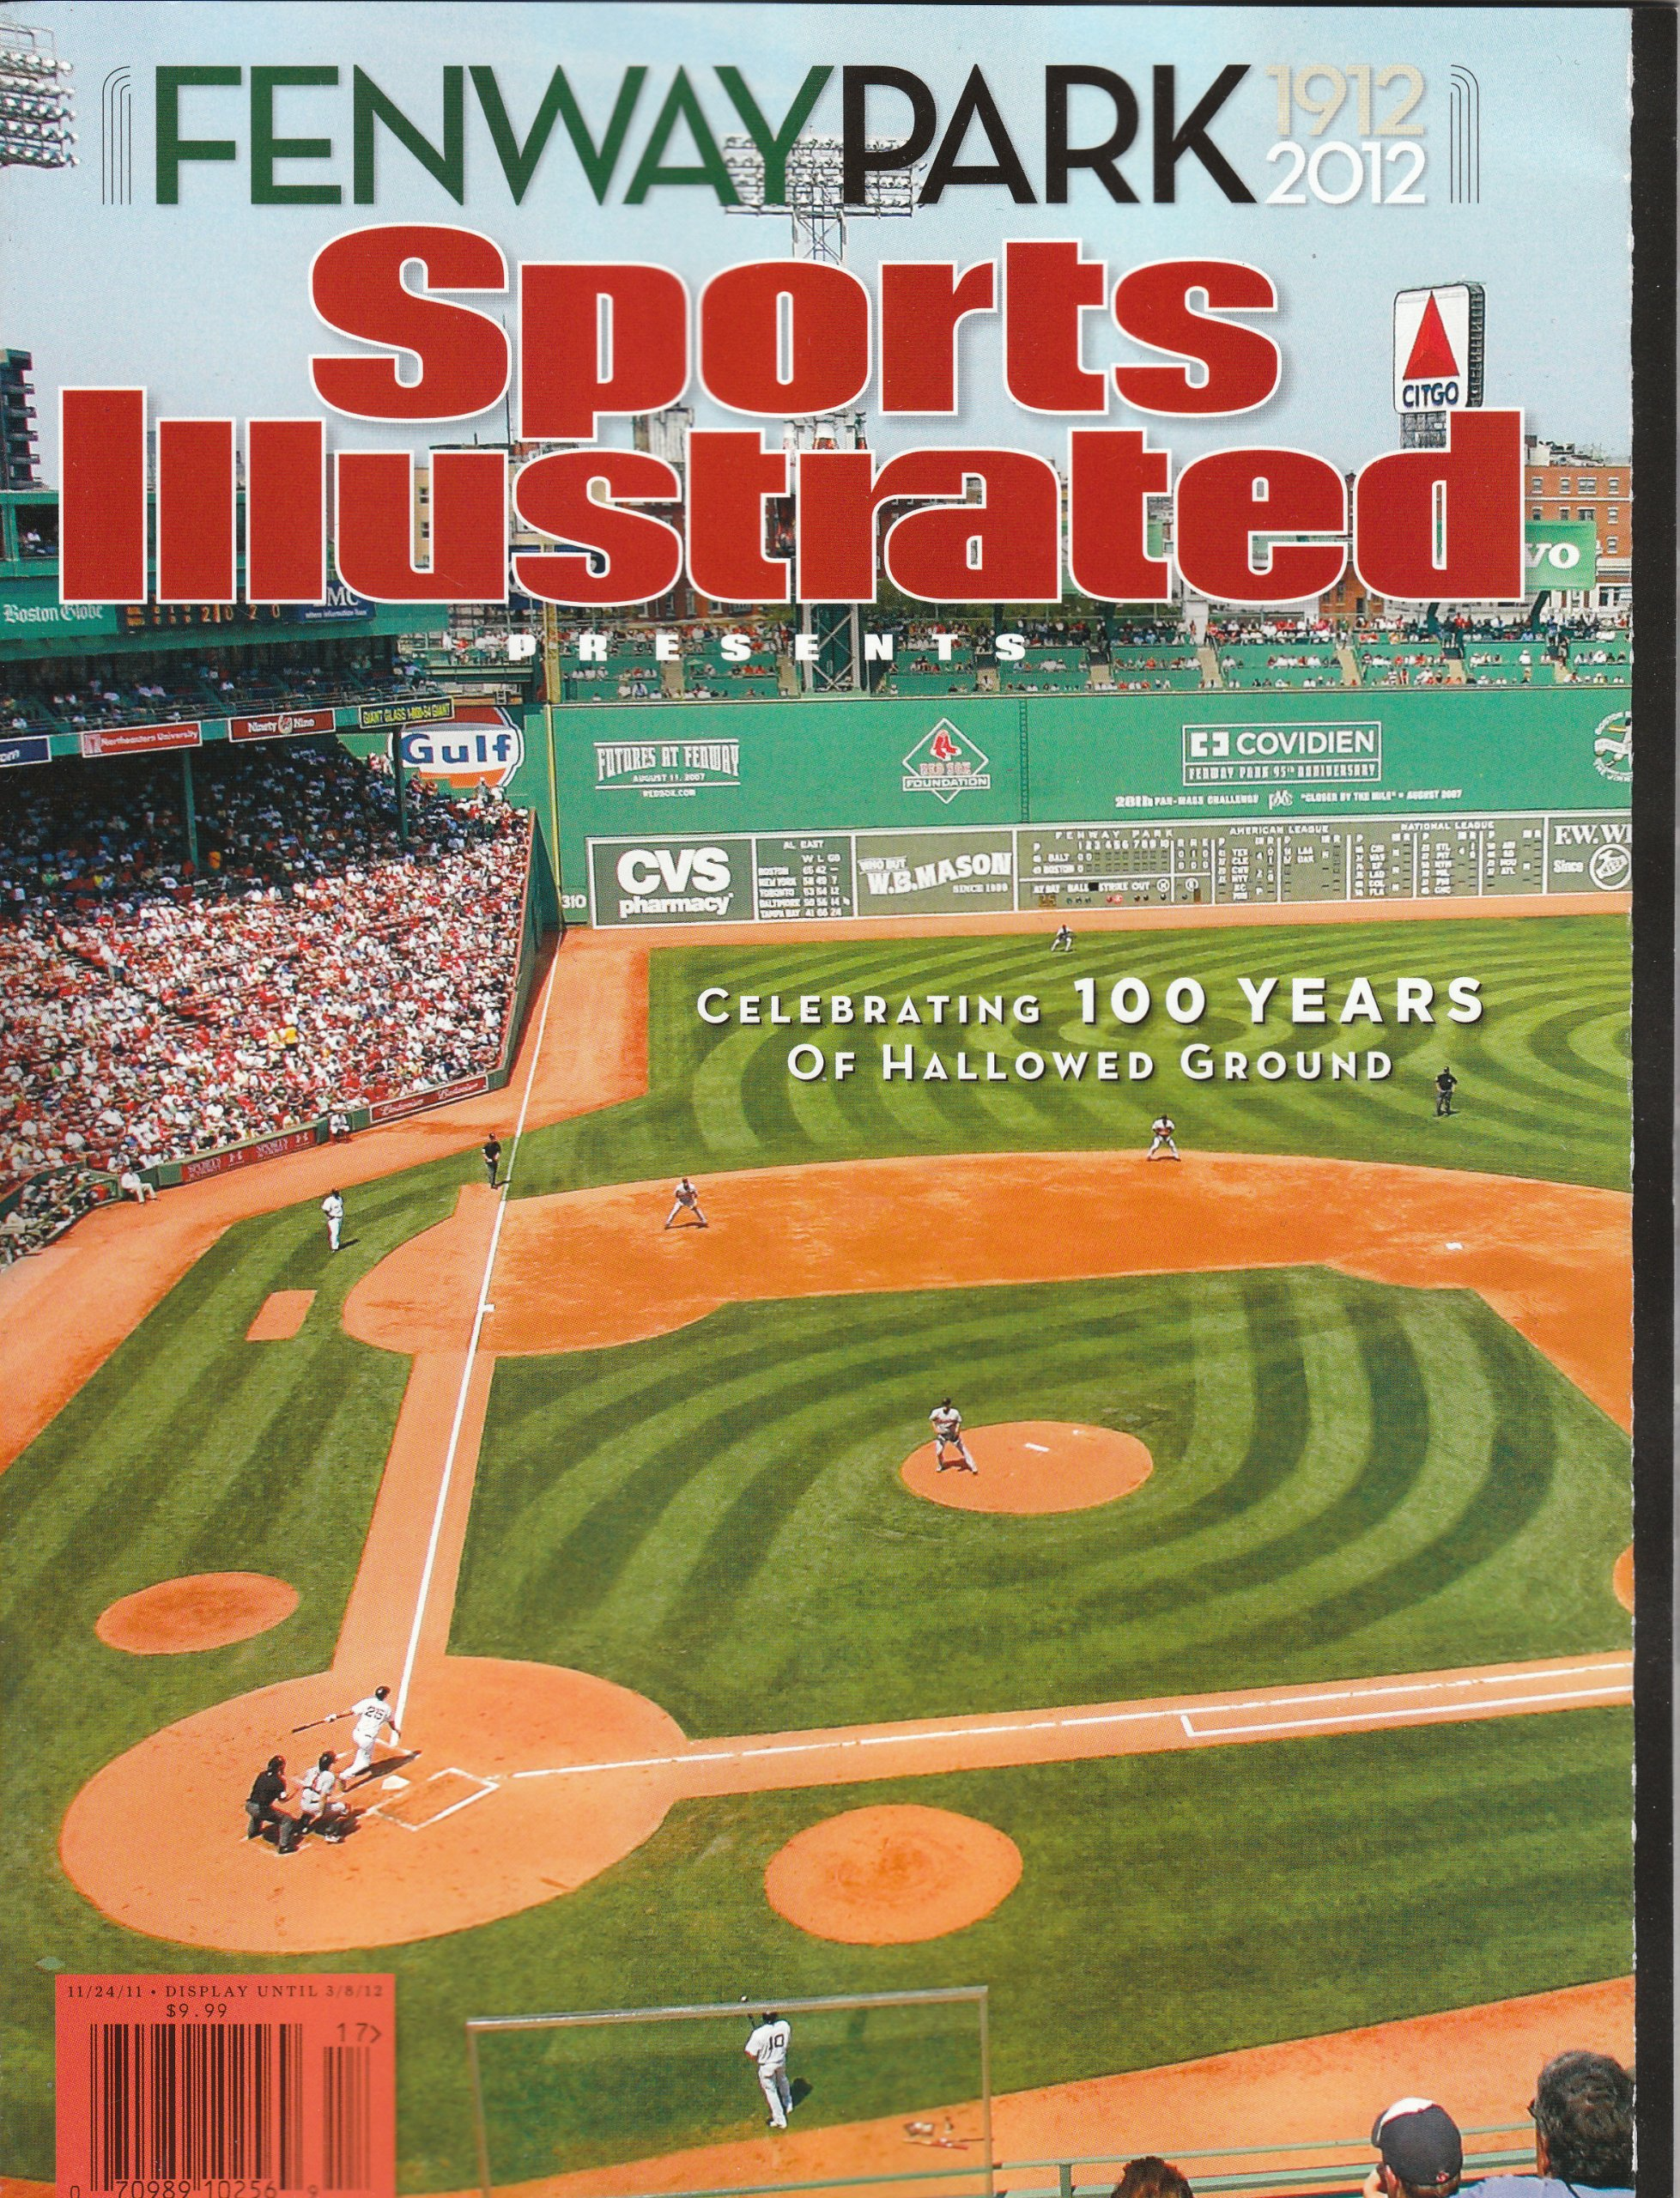 Download Fenway Park 100th Anniversary Sports Illustrated Commemorative Magazine 1912-2012 Boston Red Sox New, No mailing label! pdf